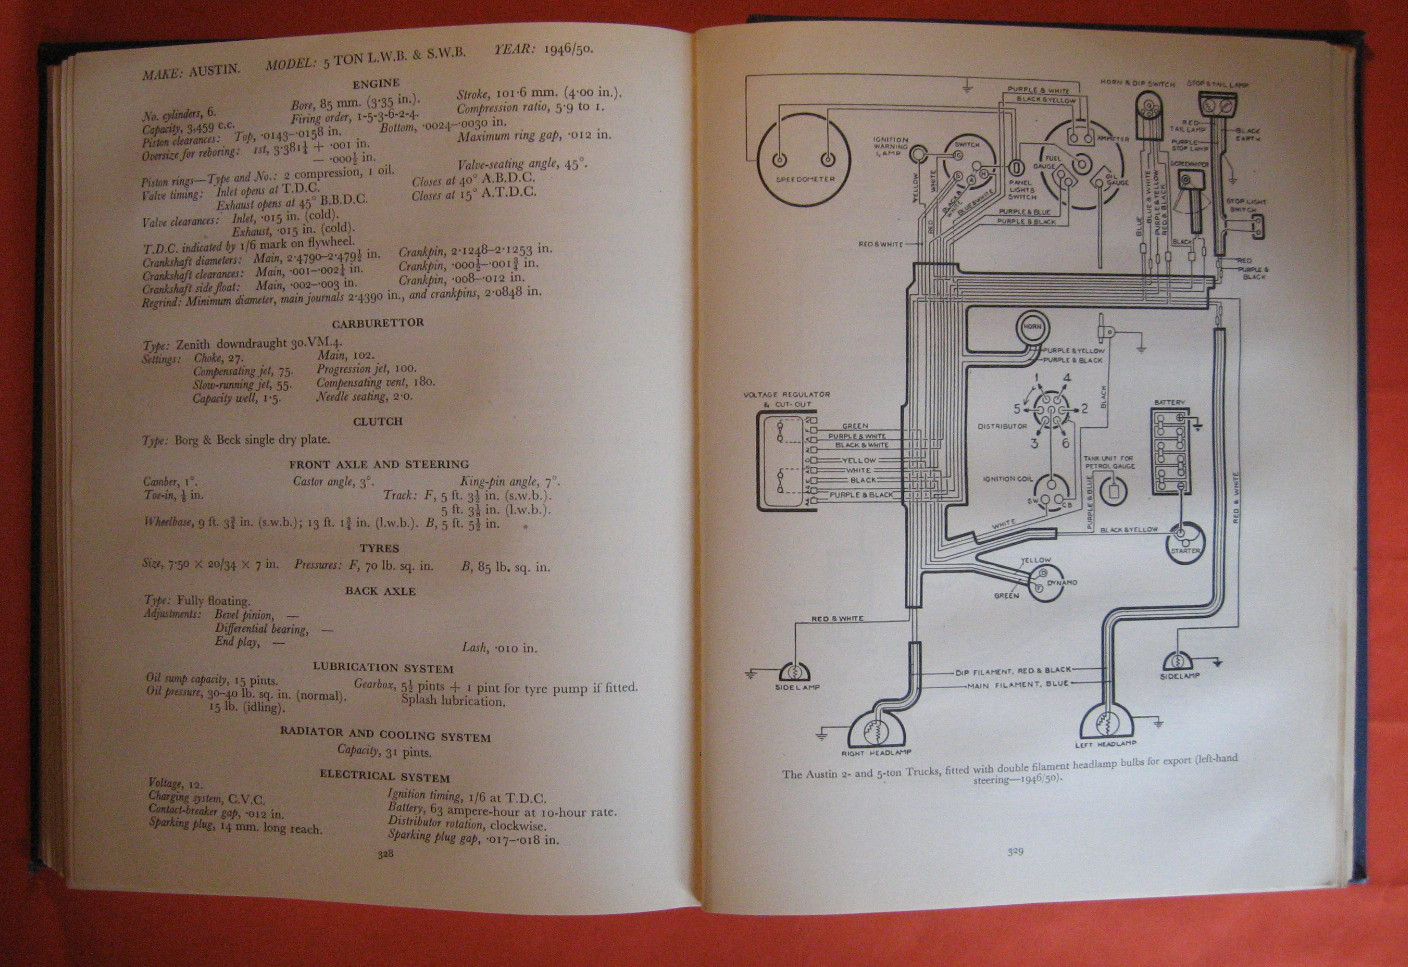 Auto Wiring Diagram Library 1952 Packard List Of Schematic Circuit Lincoln Ac 225 S Modern Motor Engineer The Volume V Data Sheets And Diagrams Rh Pistilbooks Net